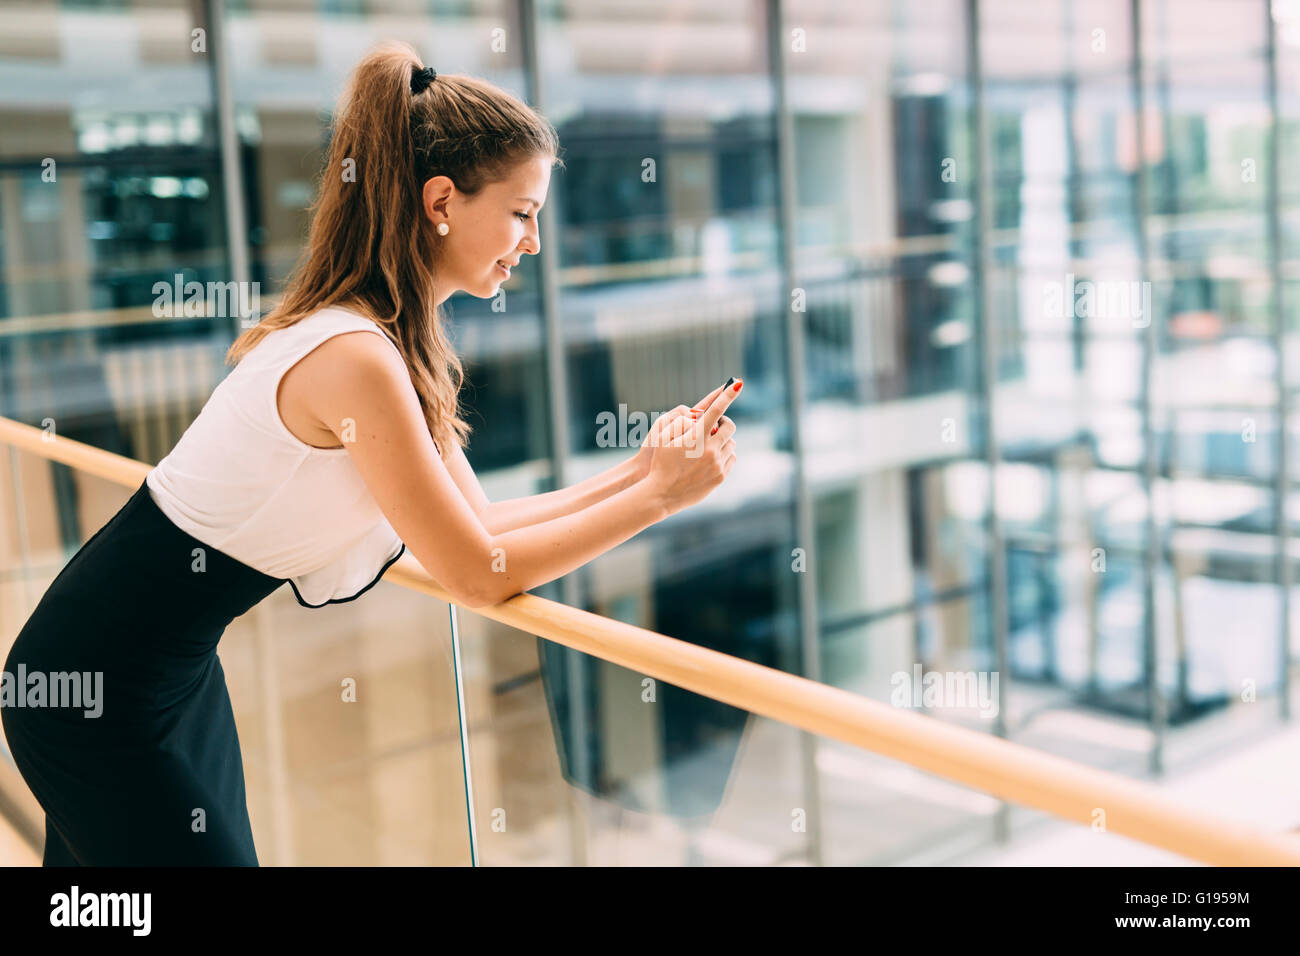 Beautiful businesswoman using phone and smiling - Stock Image